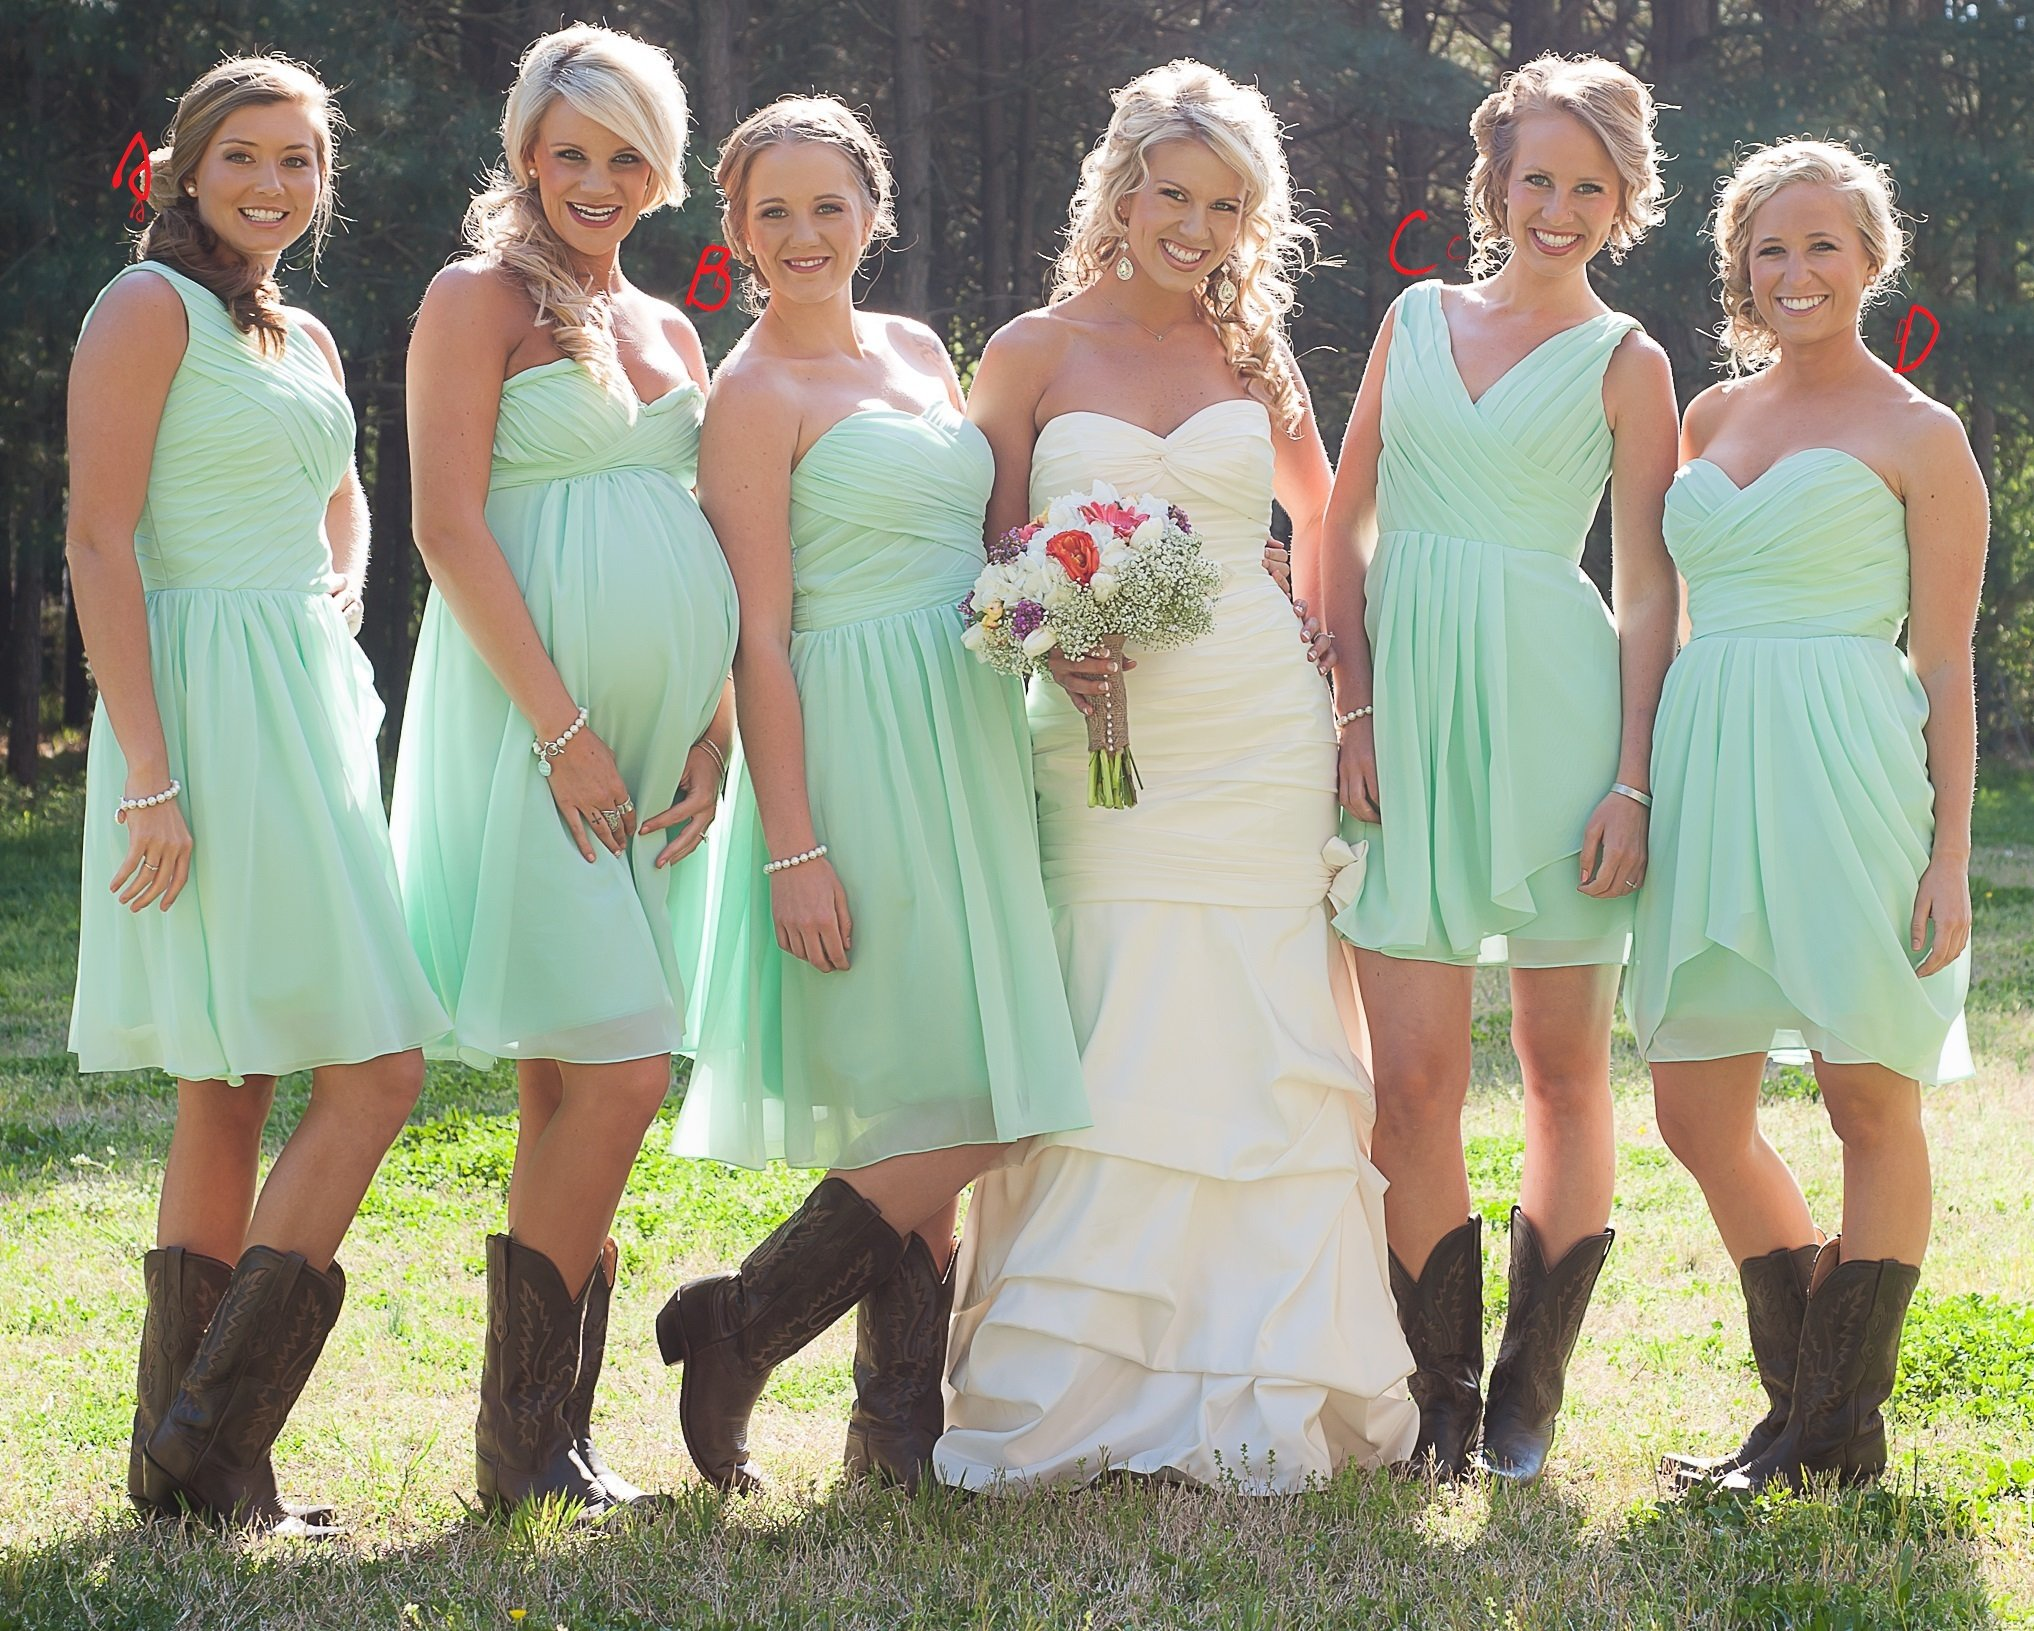 Summer Rustic Country Mint Green Mismatched Chiffon Short Bridesmaid Dresses With Boots Gdc1508 In 2021 Country Bridesmaid Dresses Summer Bridesmaid Dresses Beach Bridesmaid Dresses [ 1631 x 2034 Pixel ]